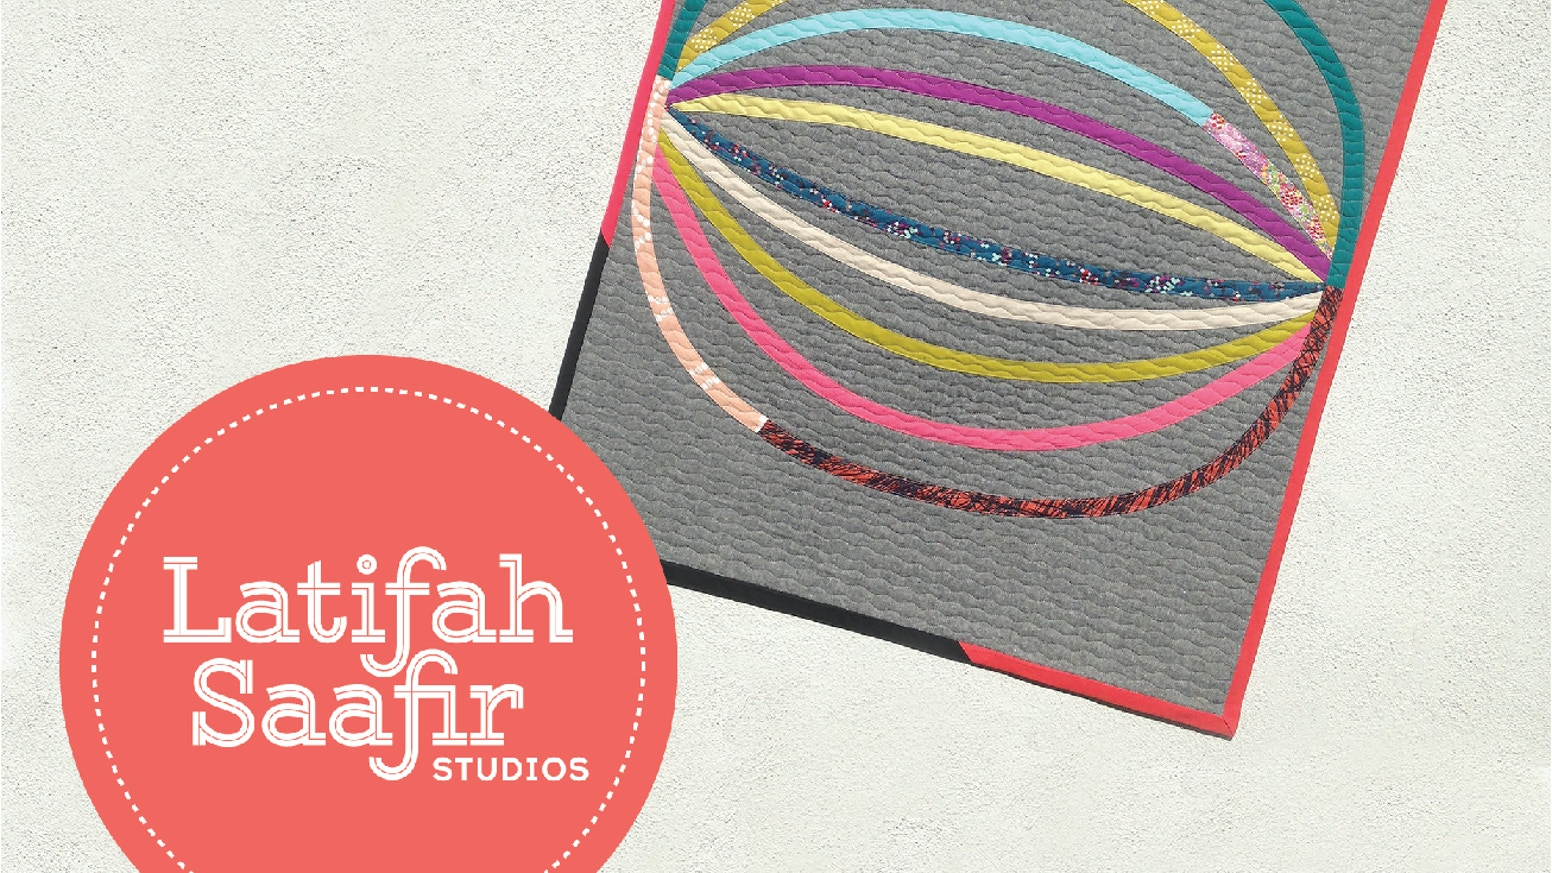 Latifah Saafir is launching two quilt pattern and product lines including one for kids!